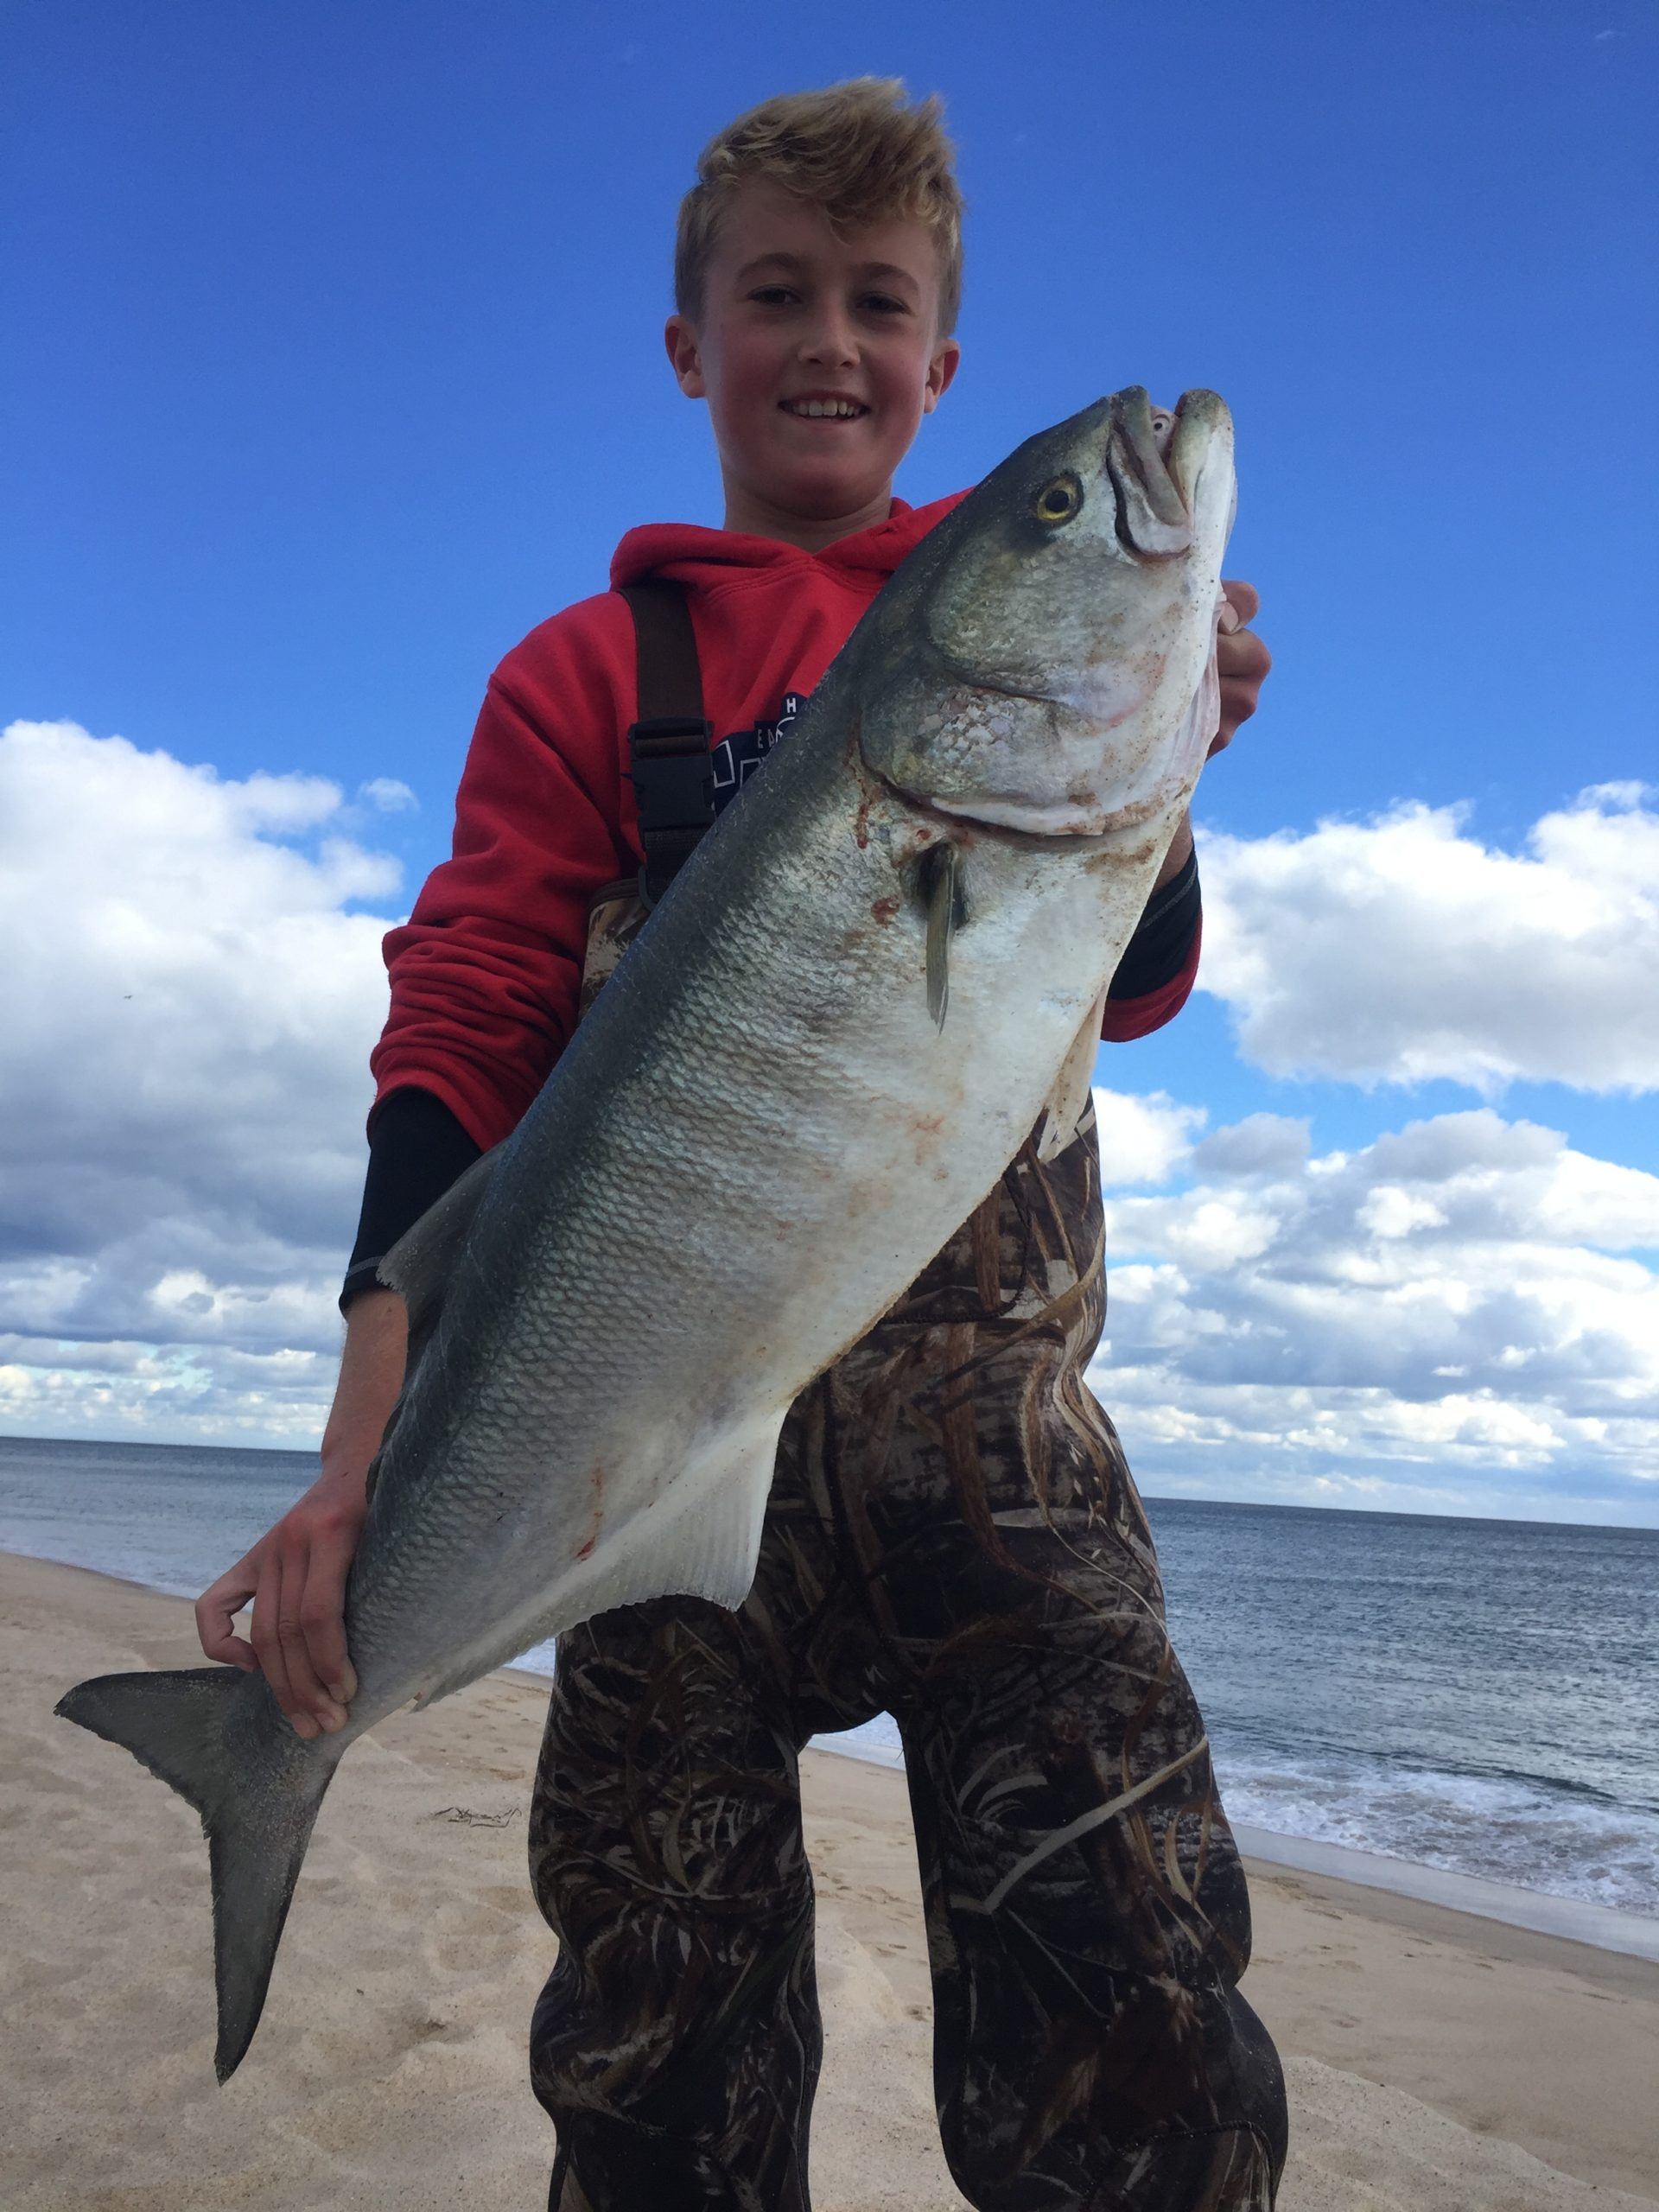 Big bluefish like this one caught a few years ago by Cam McAuliffe have been dwindling for decades and are now at levels so low that fisheries managers say the harvest needs to be cut by 65 percent.